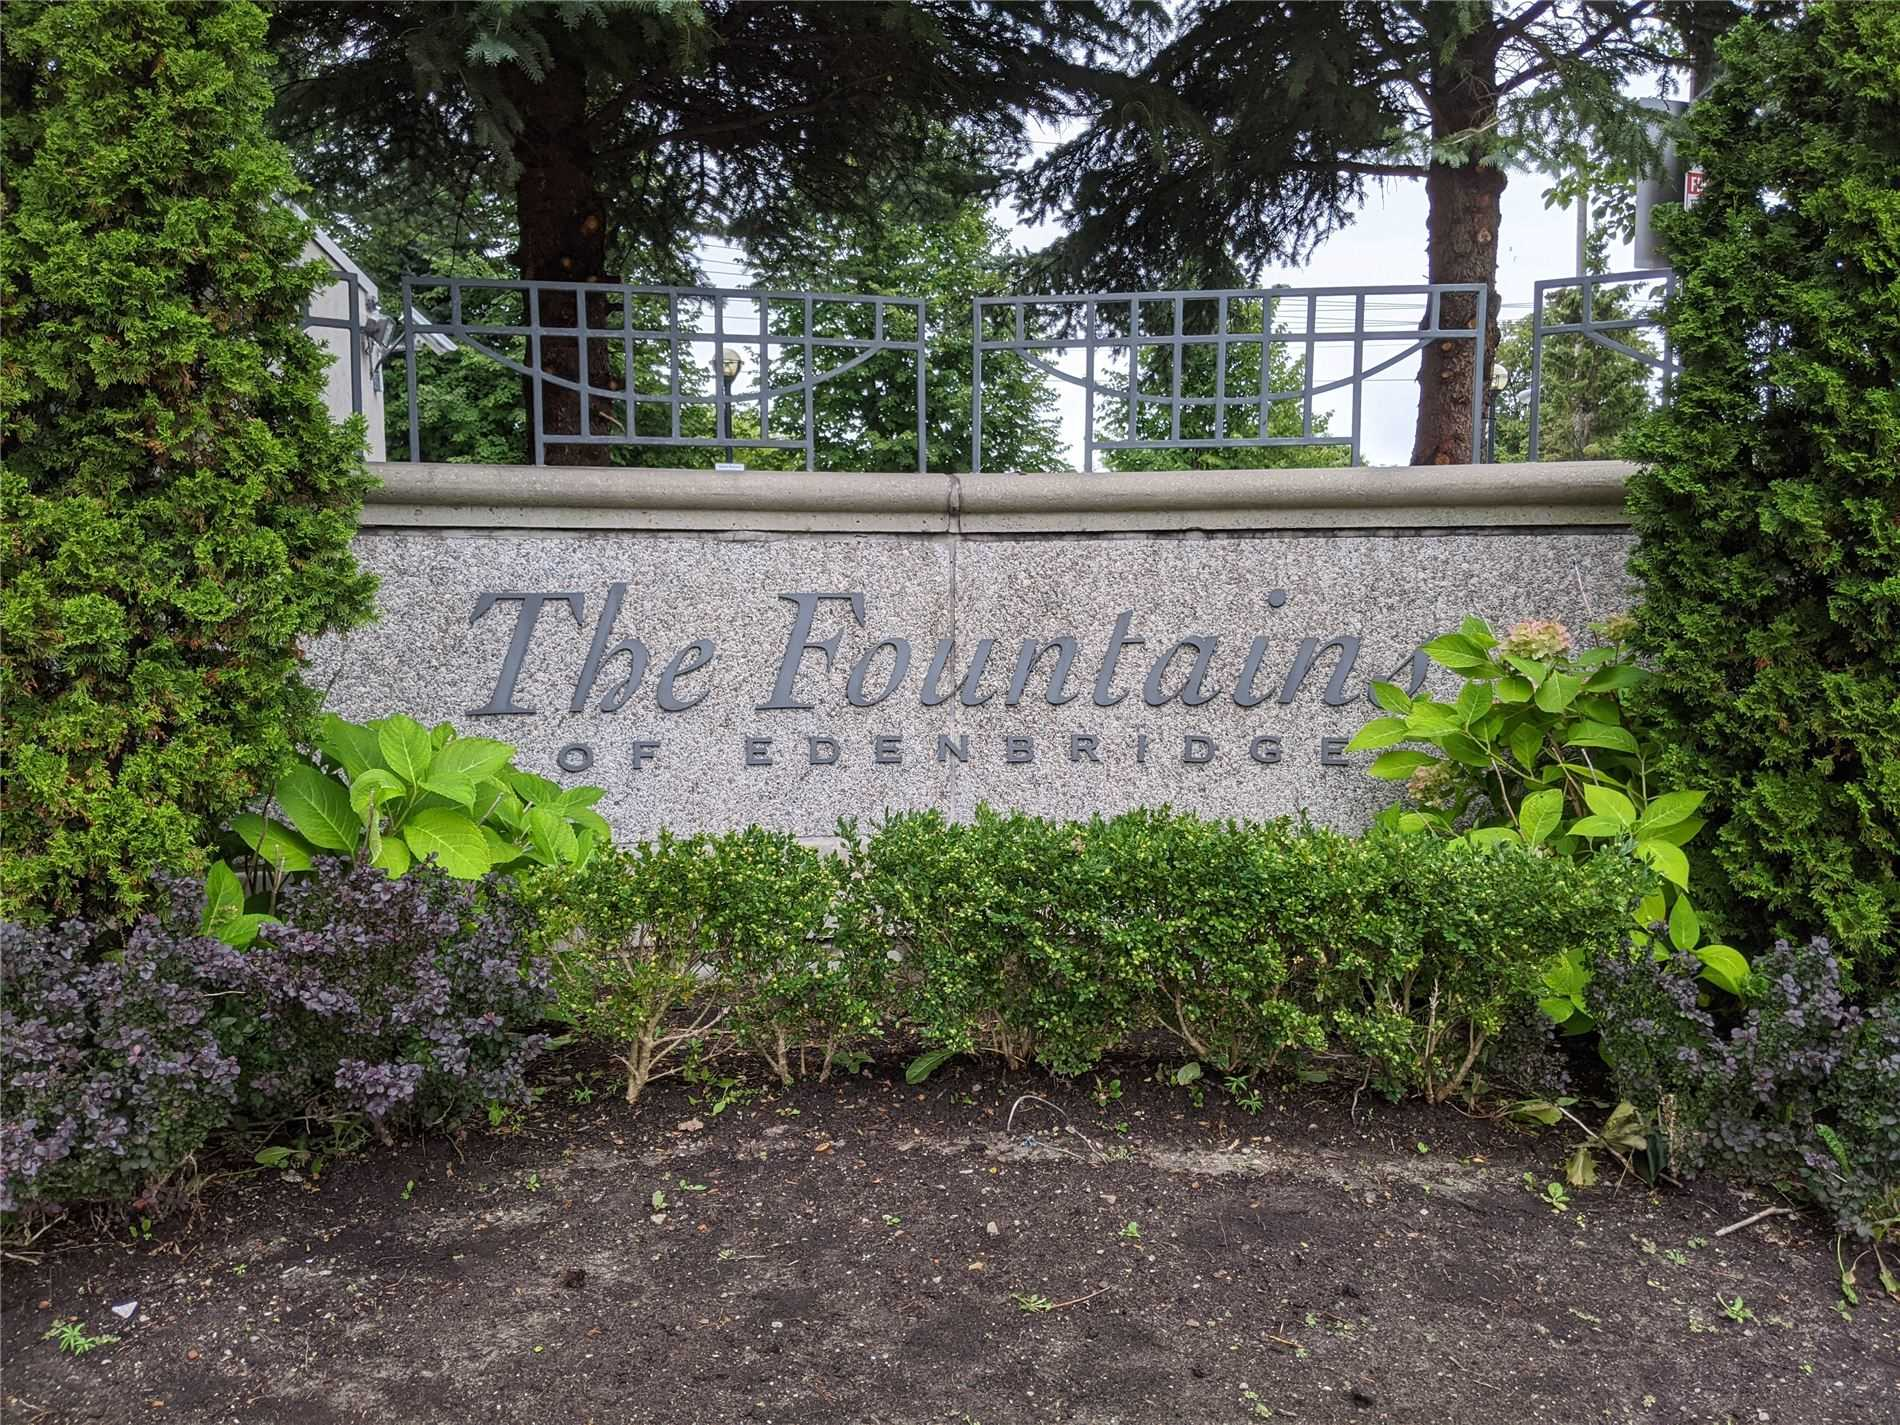 The Fountains of Edenbridge - 38 Fontenay Crt